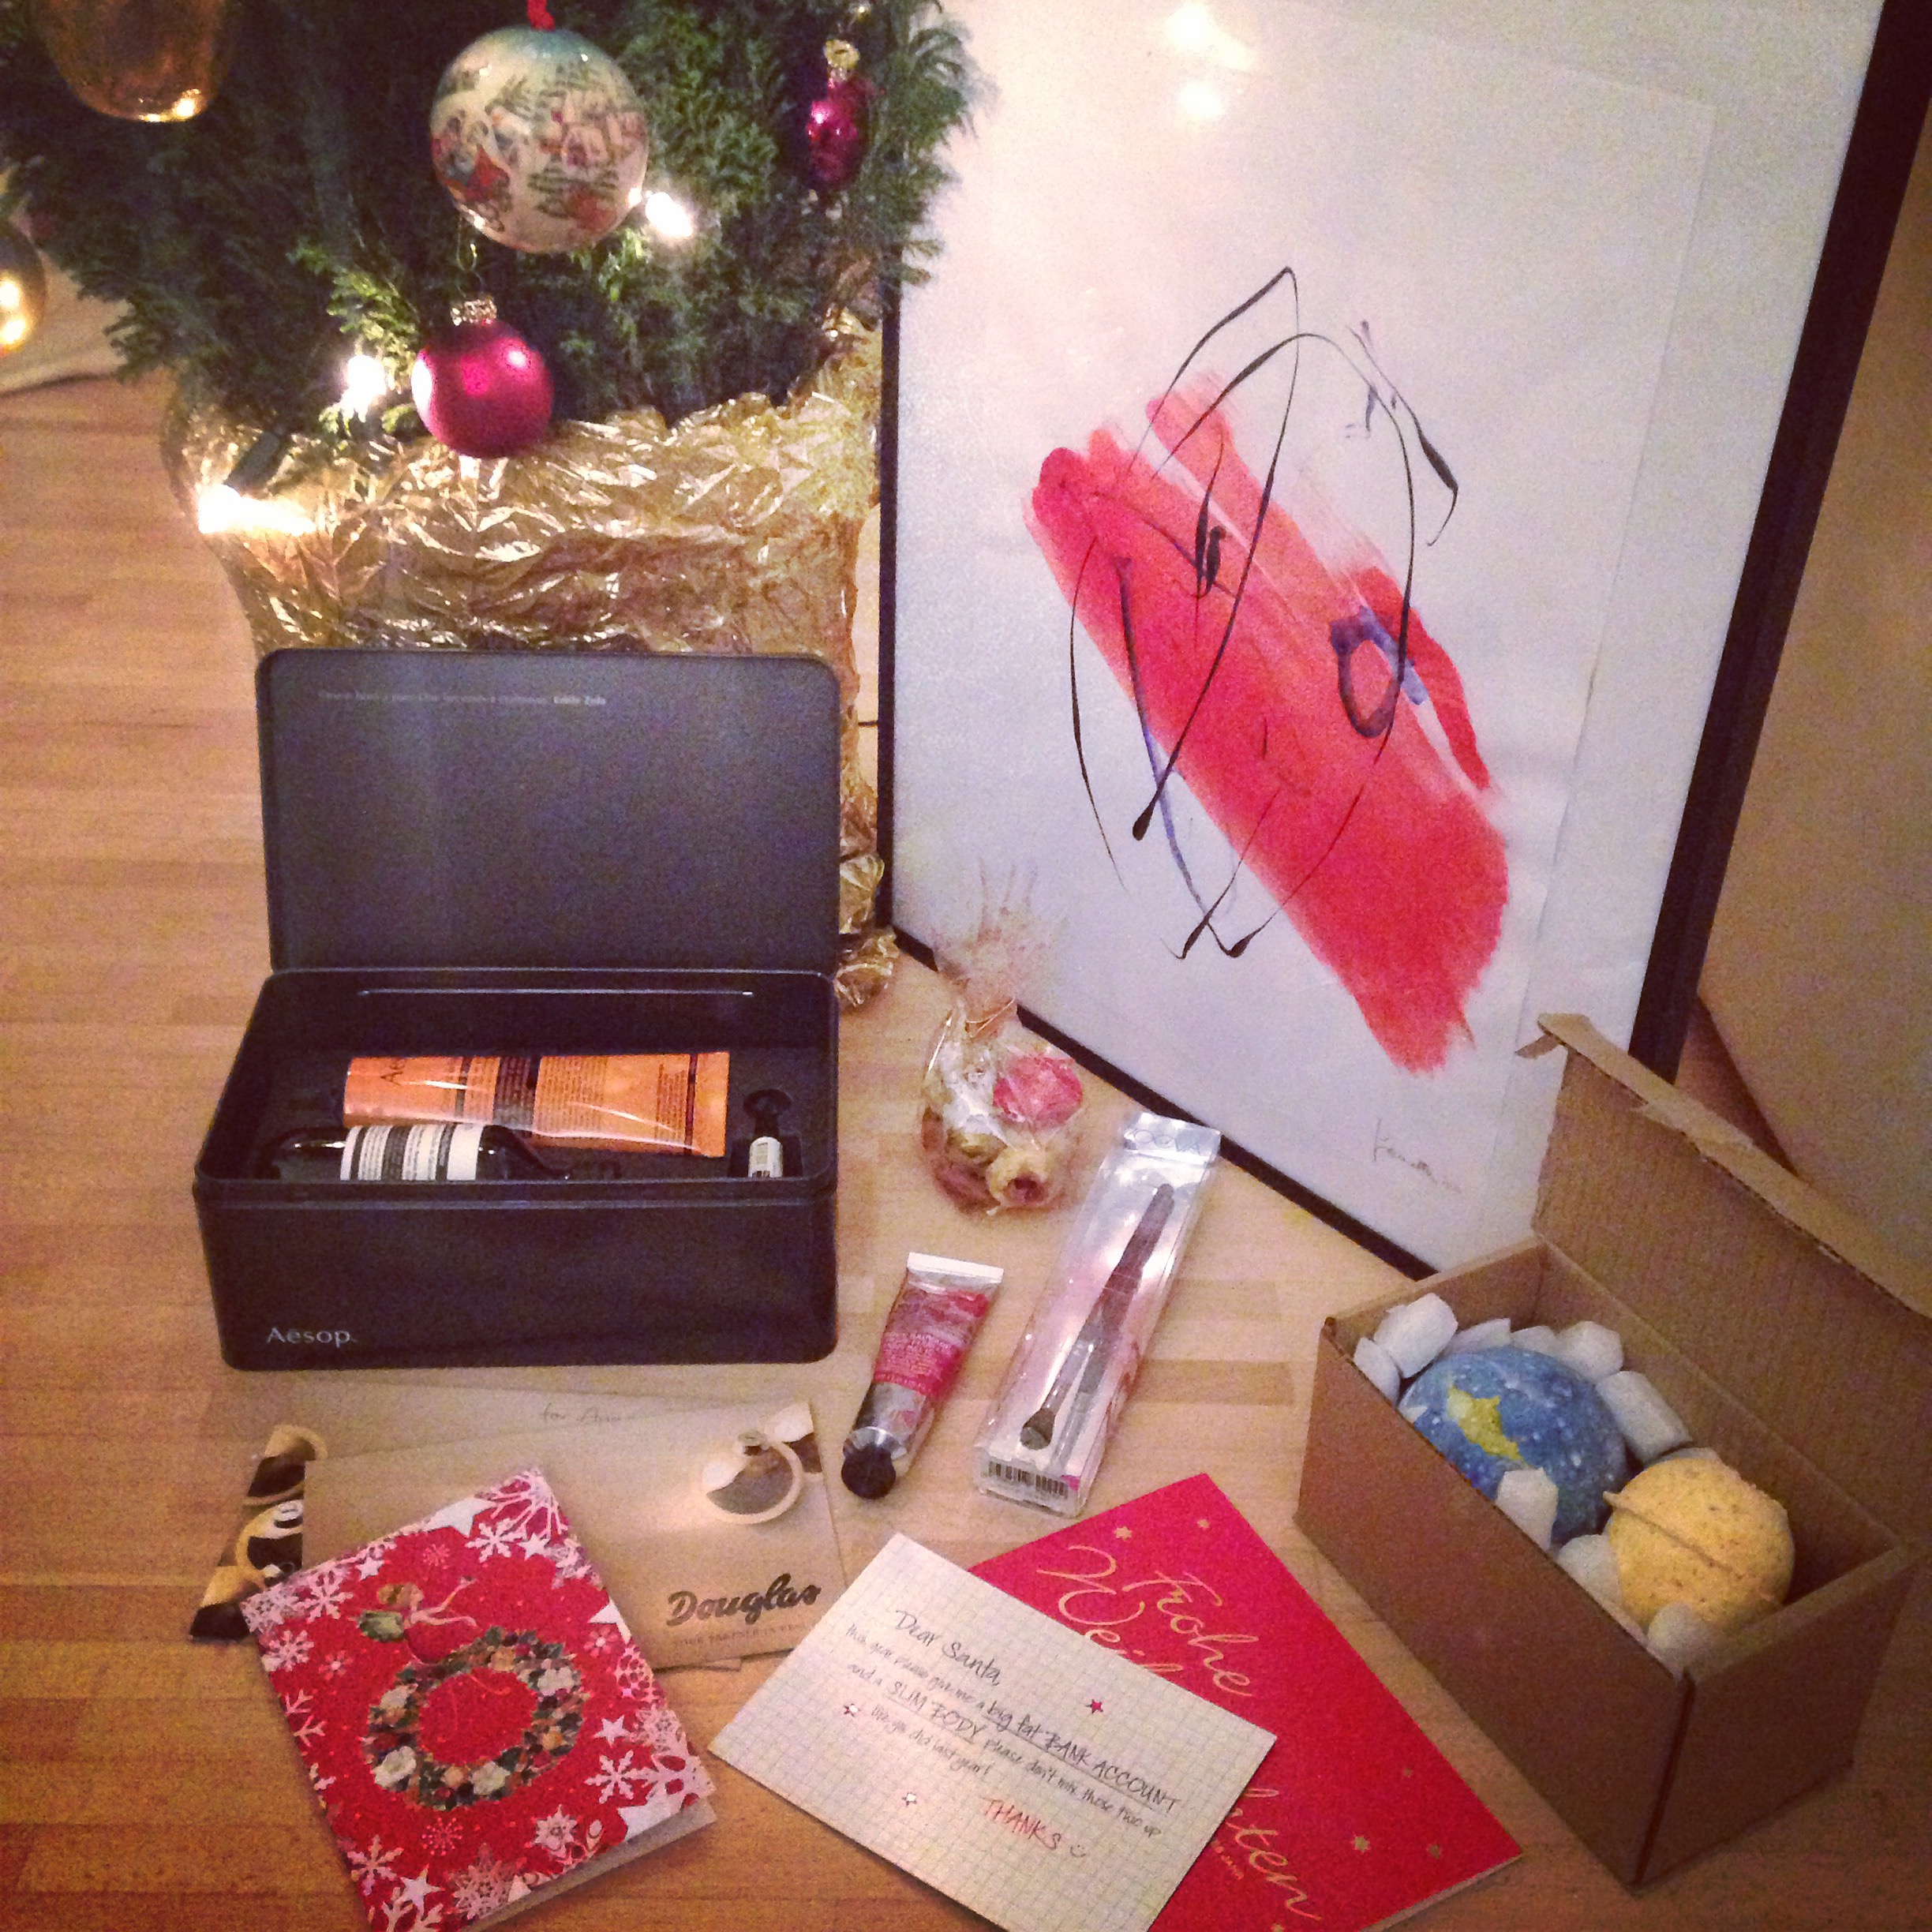 Happy new year and xmas with Aesop, Zoeva and Lush